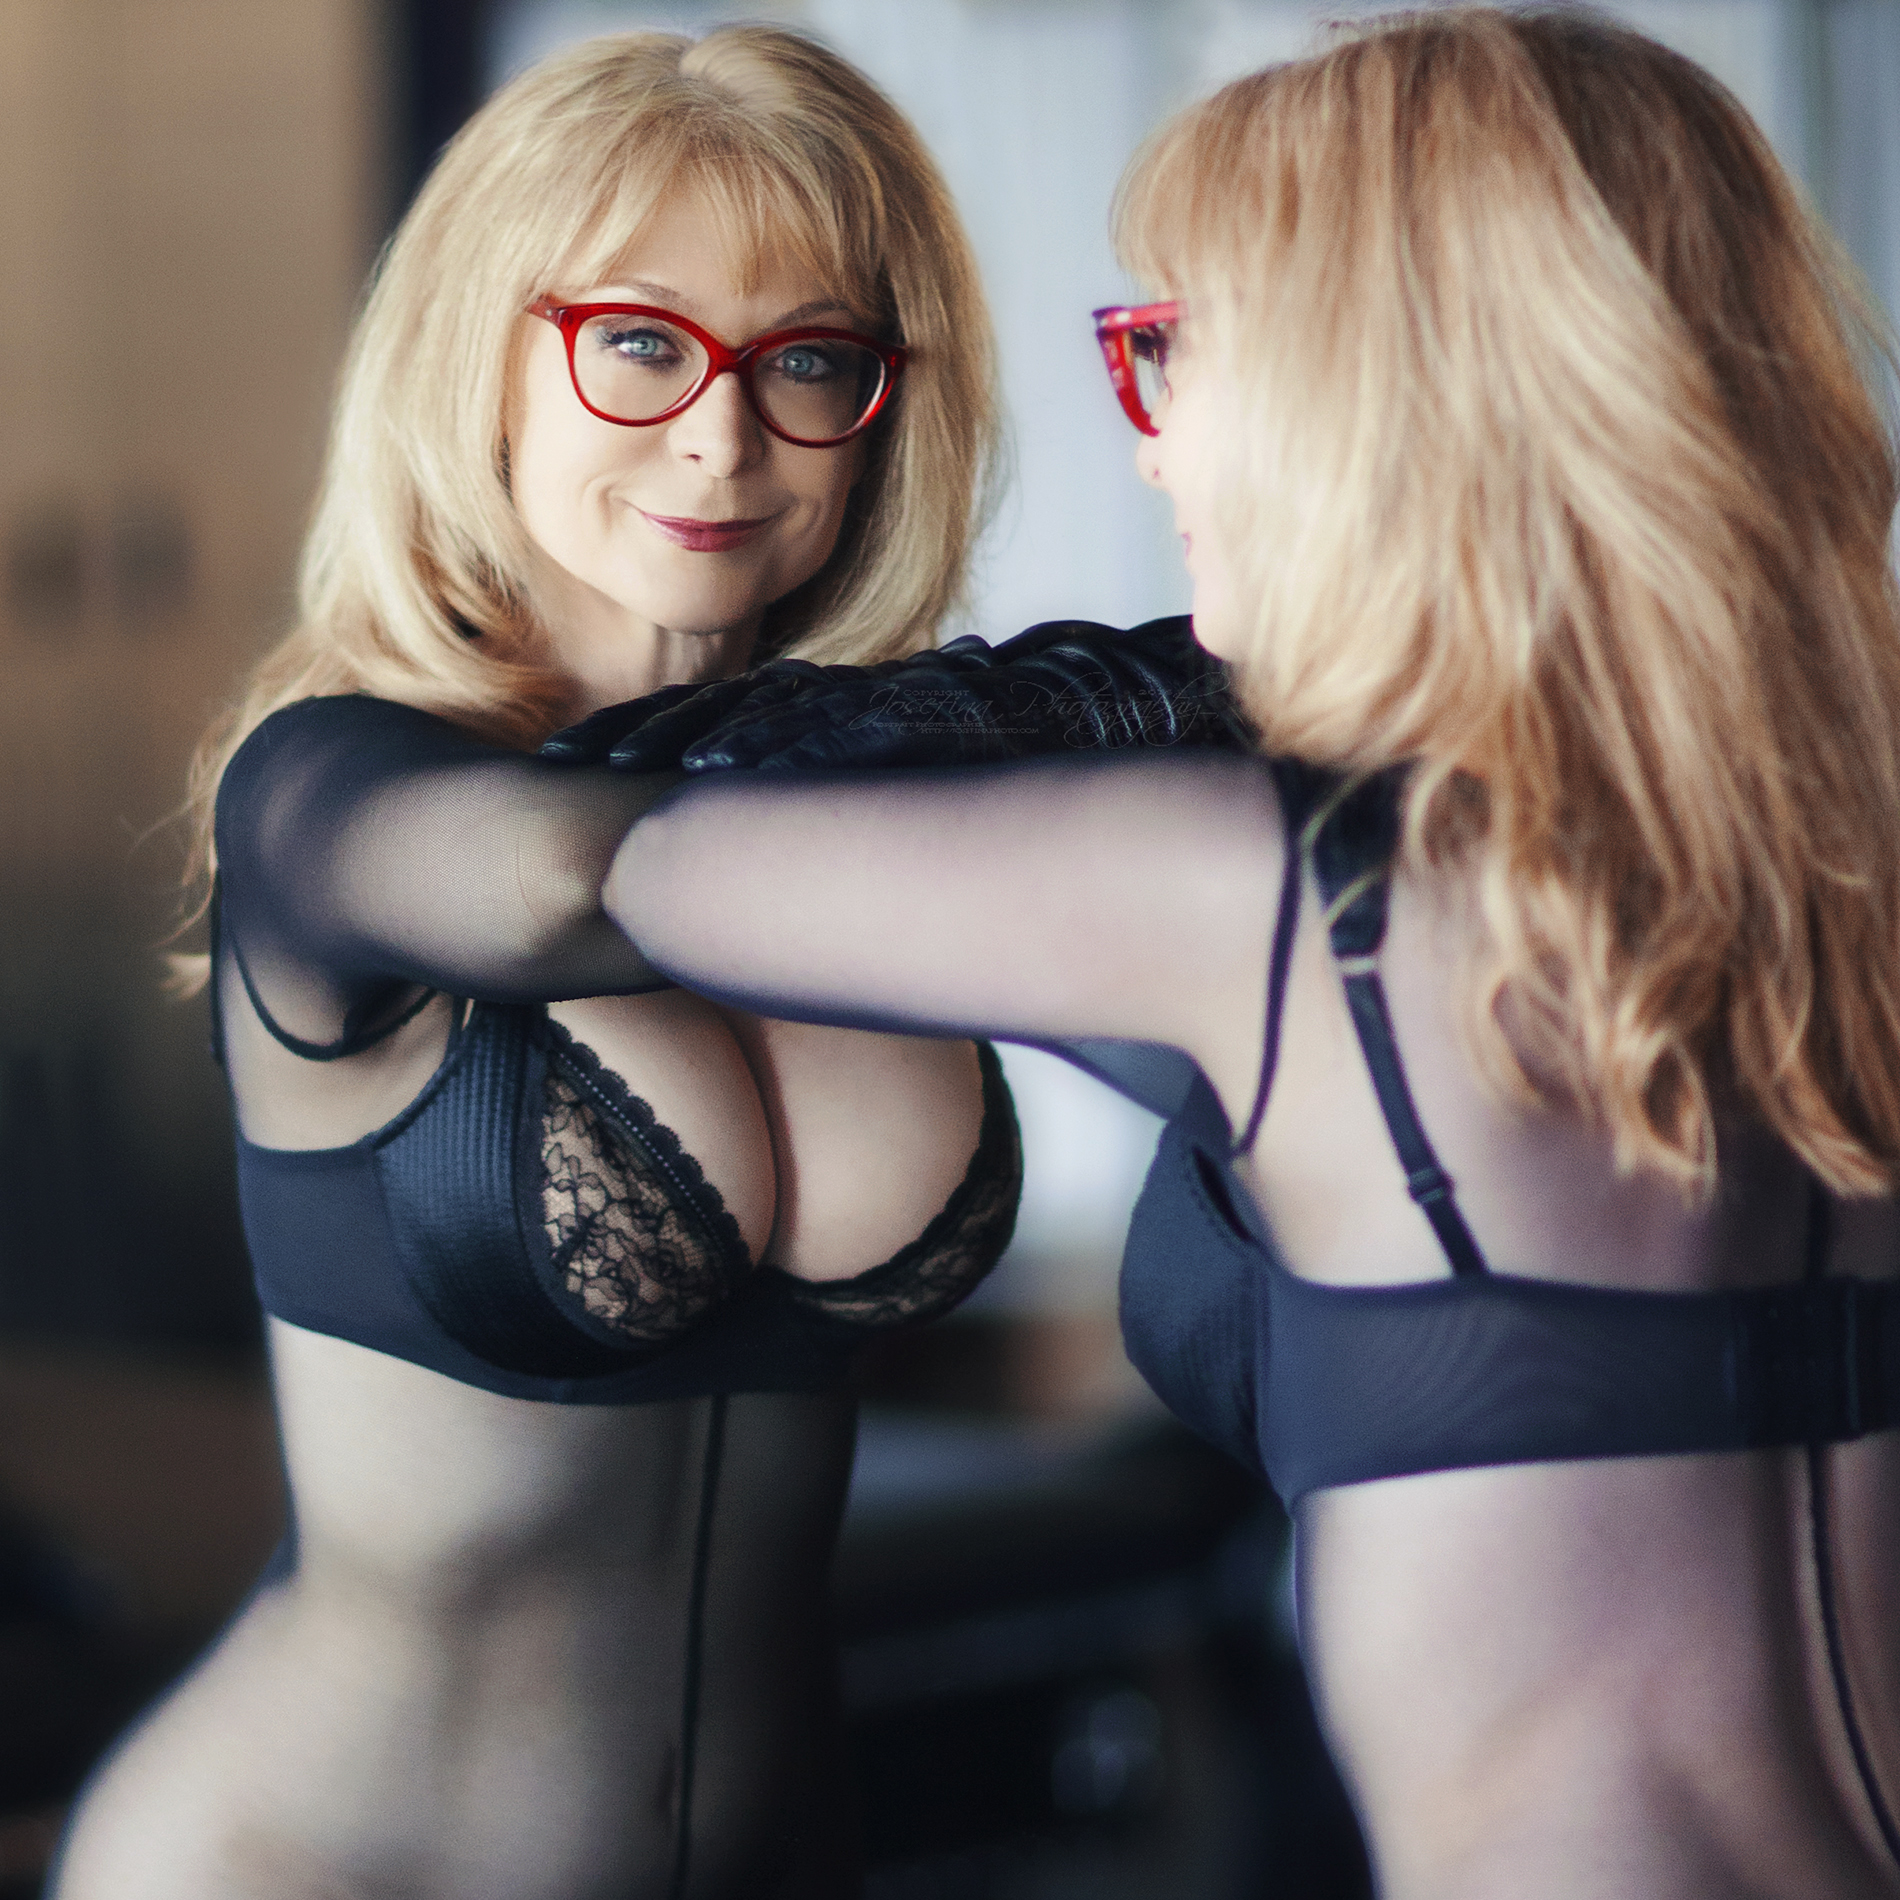 M / Nina Hartley || Copyright © Josefina Photography 2016